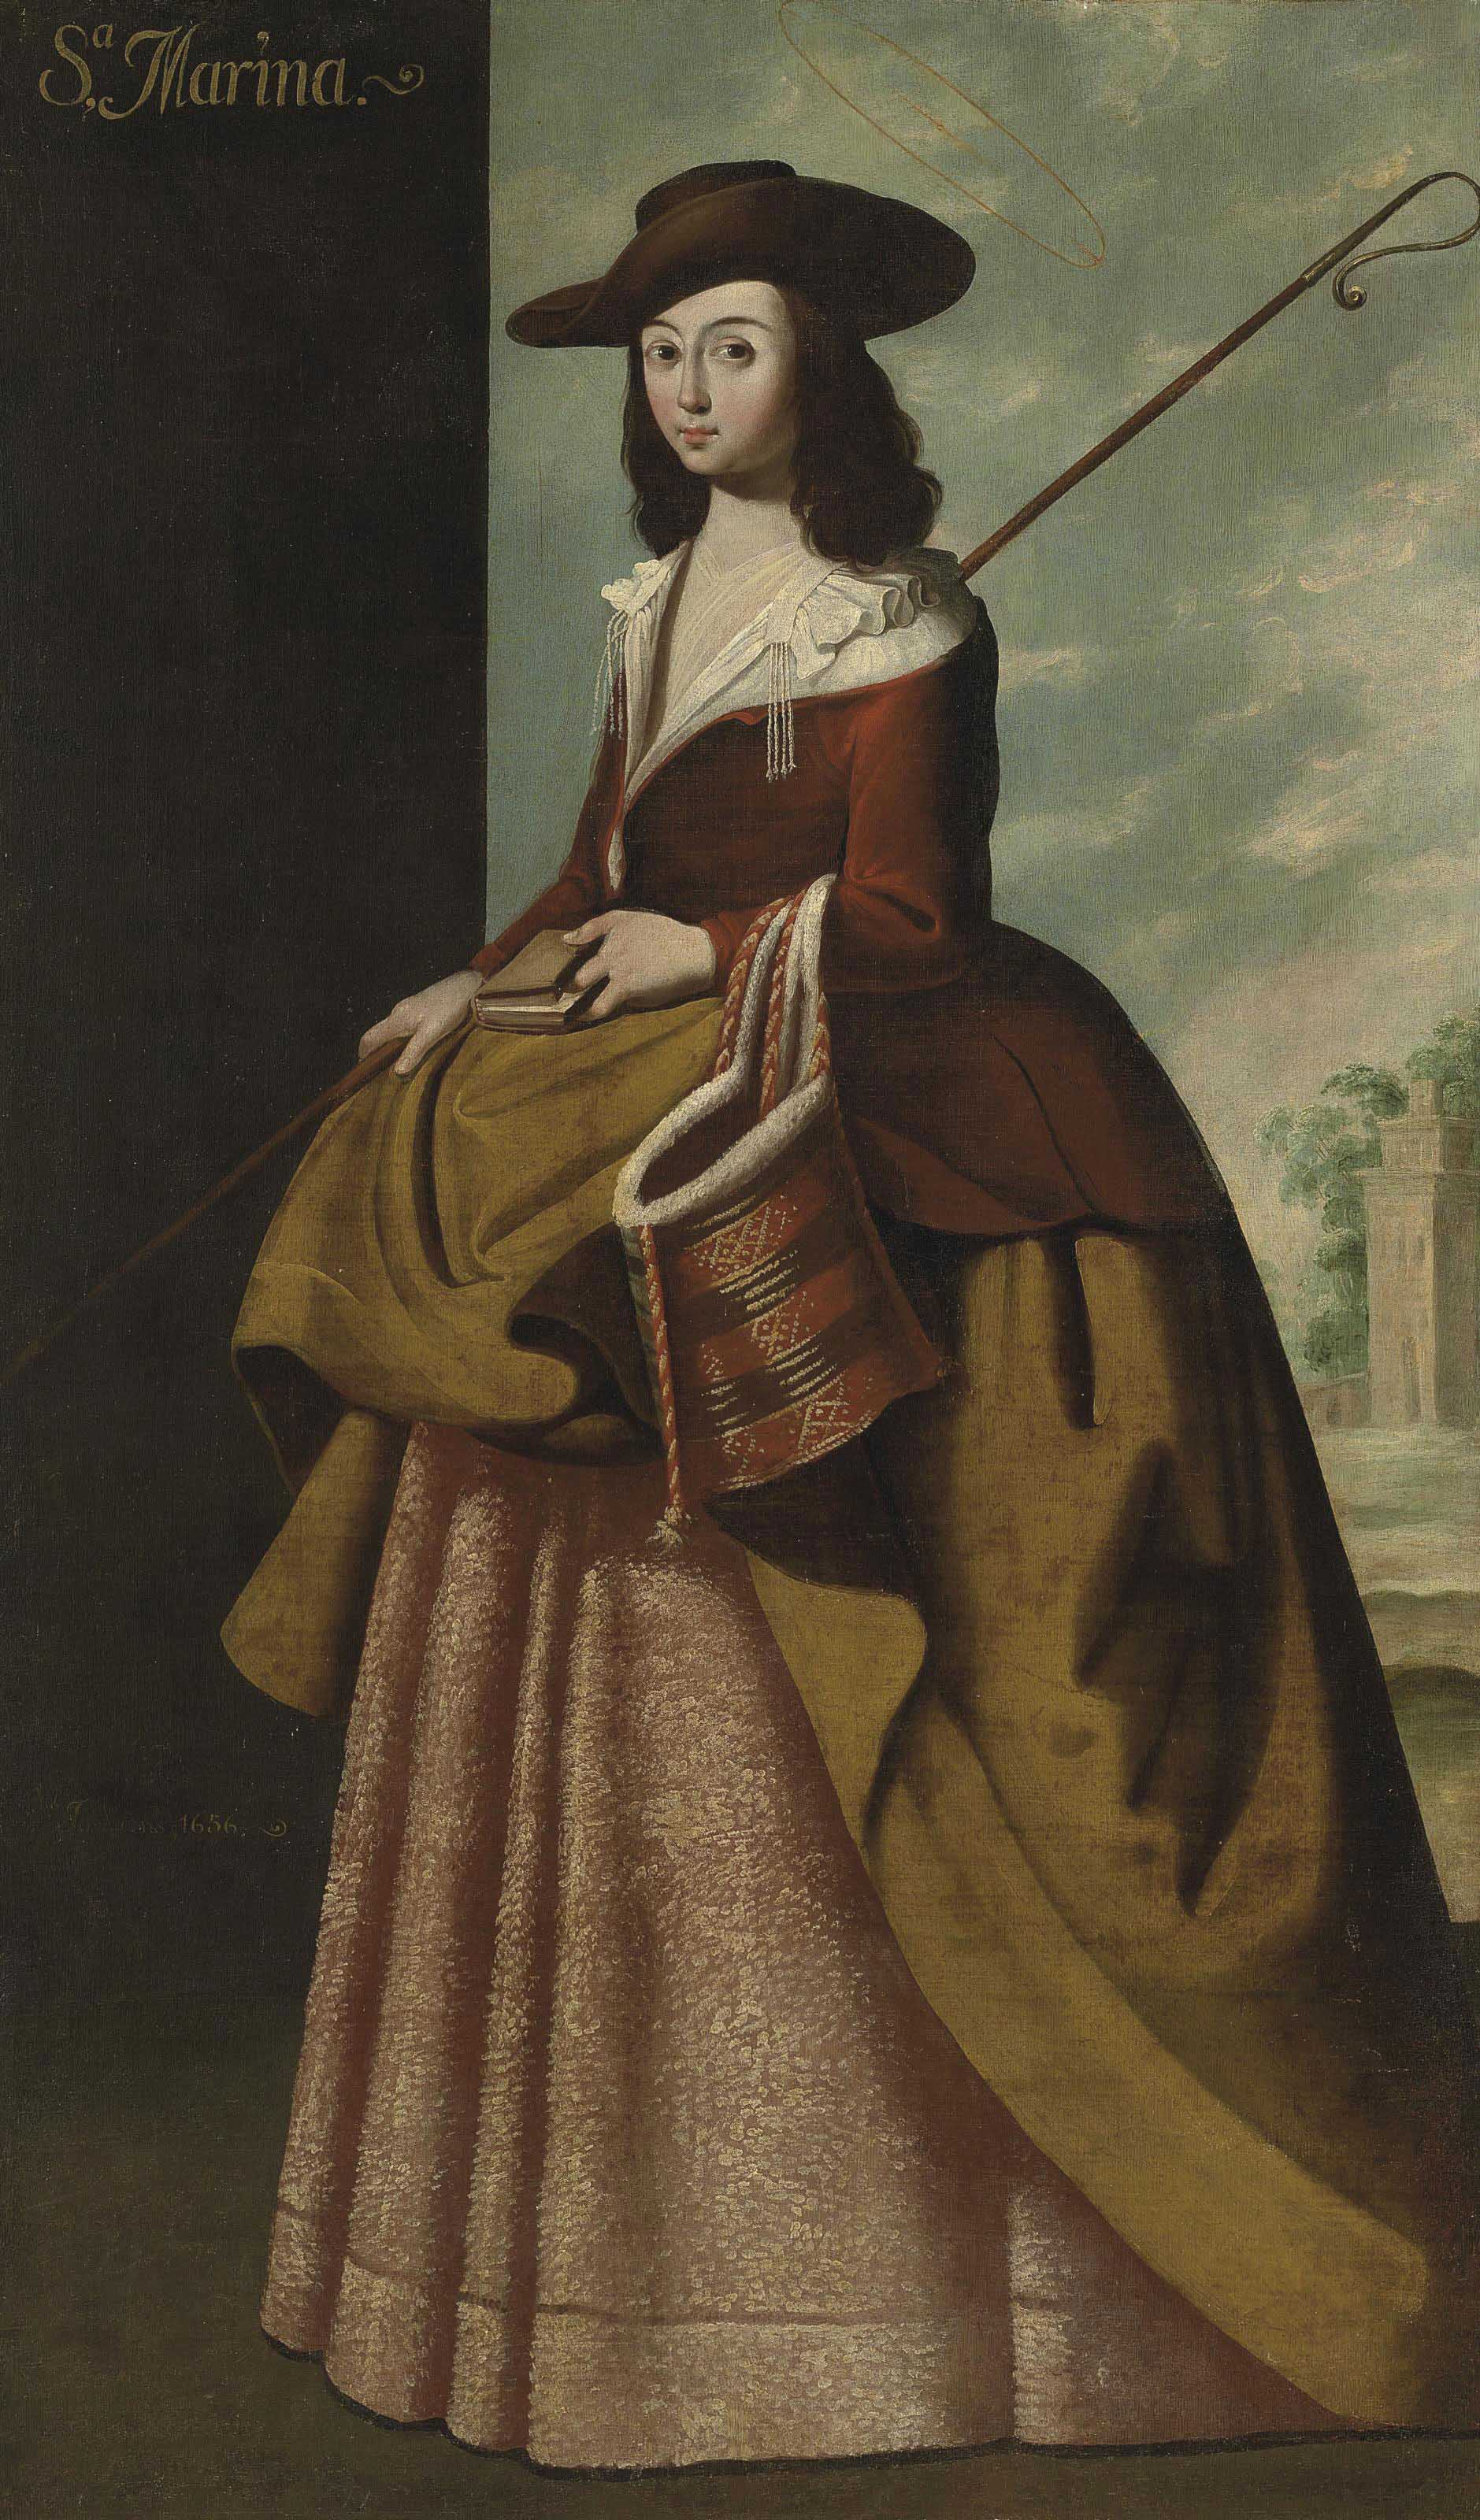 Saint Margaret of Antioch, full-length, holding a shepherd's crook and a bible